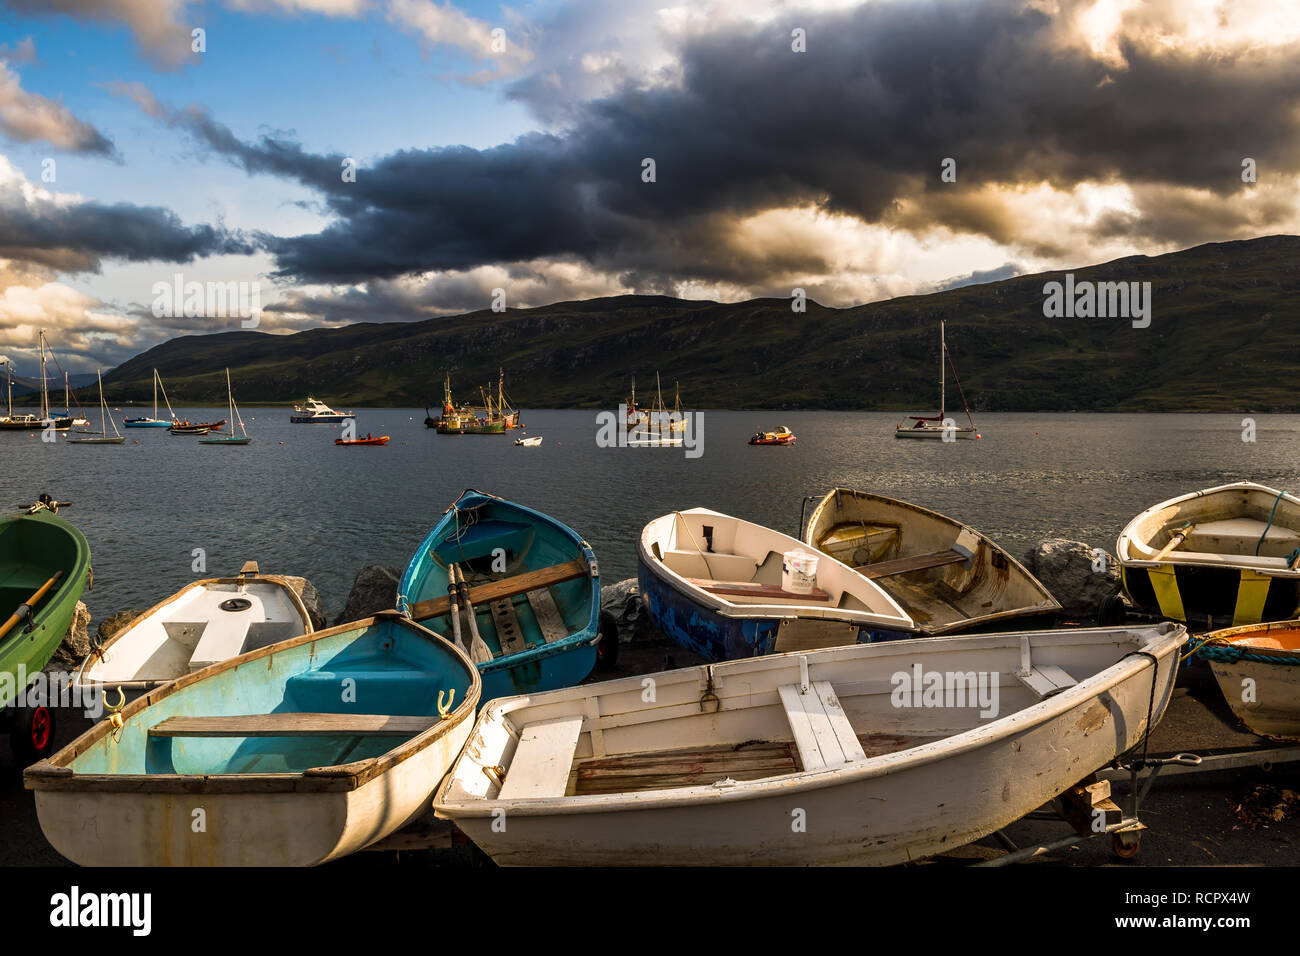 Old Small Rowing Boats At Loch Broom With Vintage Fisher Boats In The Harbor Of Ullapool In Scotland - Stock Image